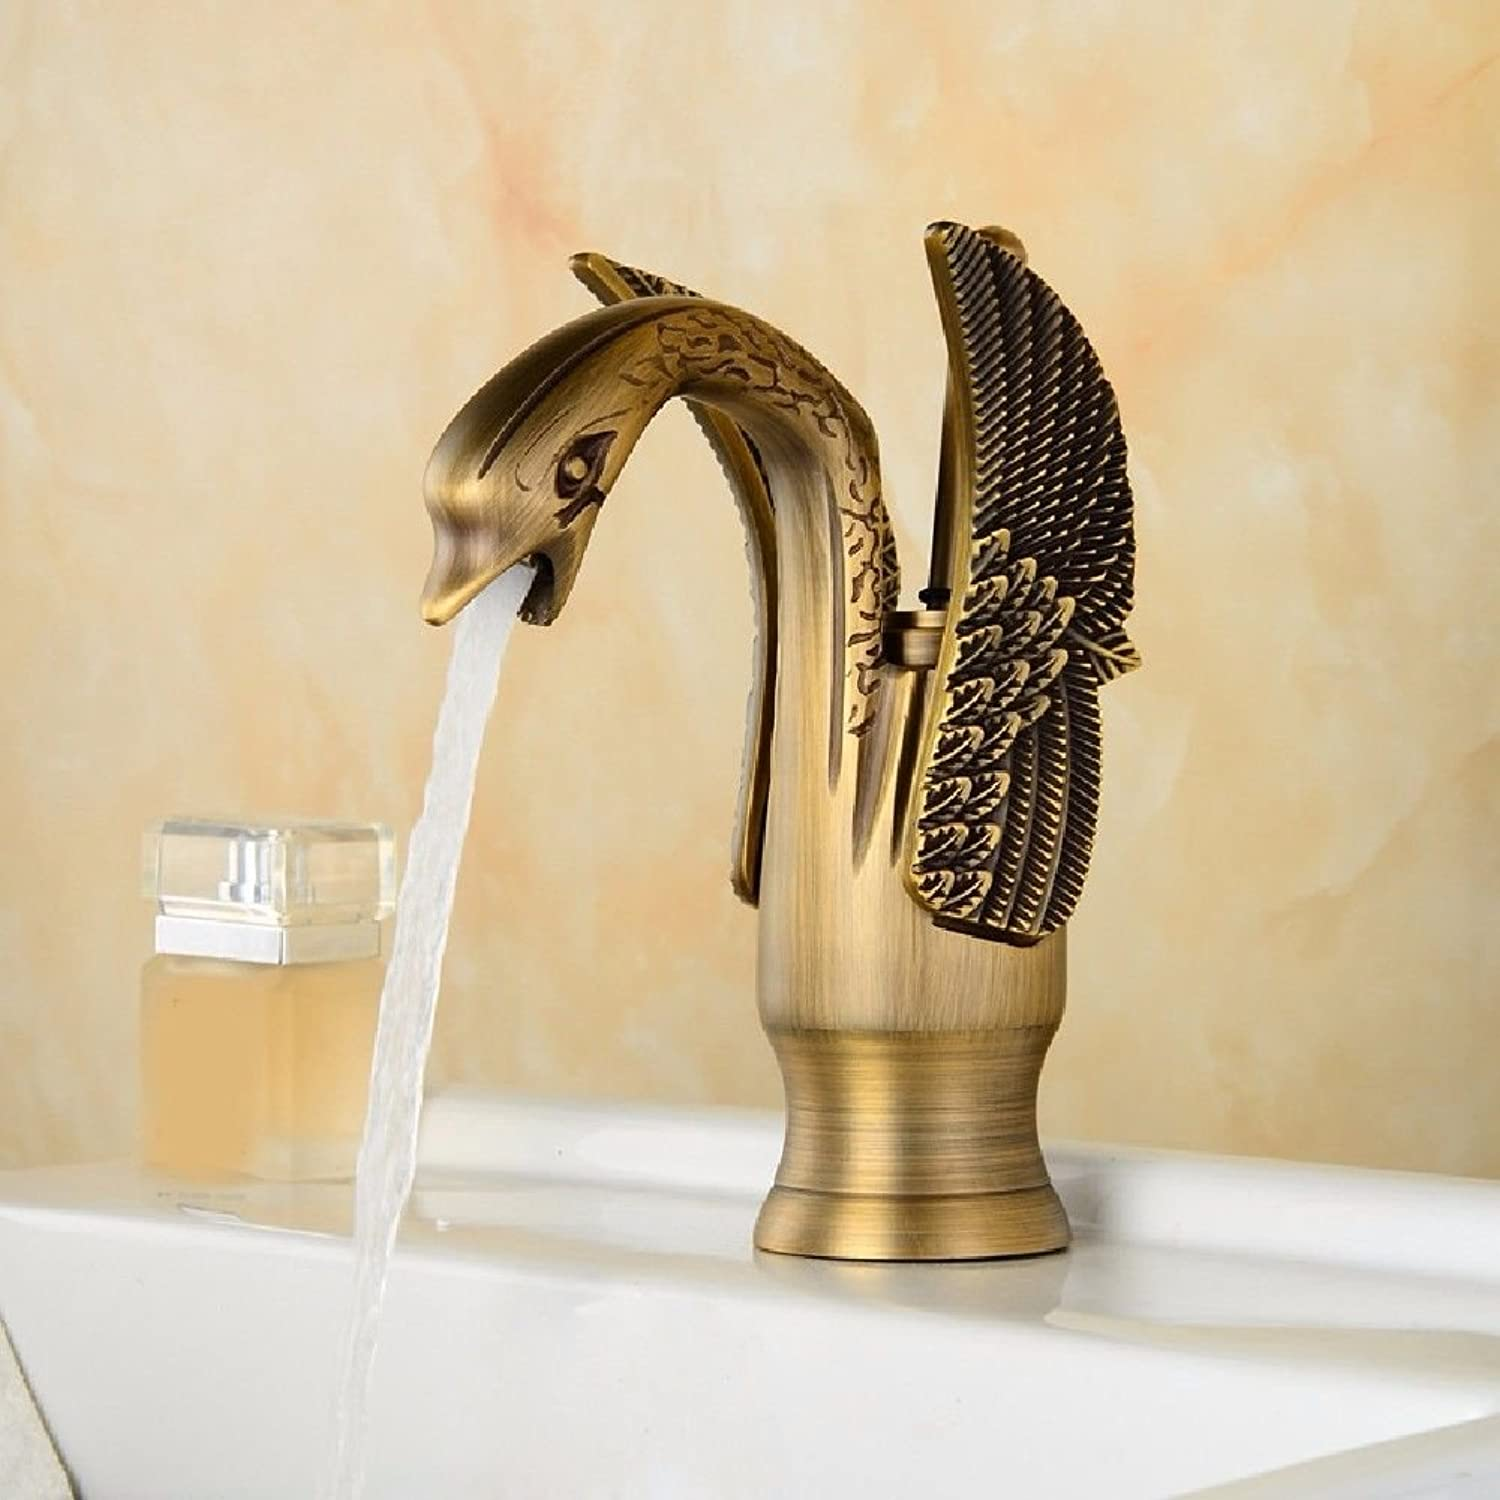 LHbox Basin Mixer Tap Bathroom Sink Faucet Full color antique brass swan hot and cold basin faucet, antique